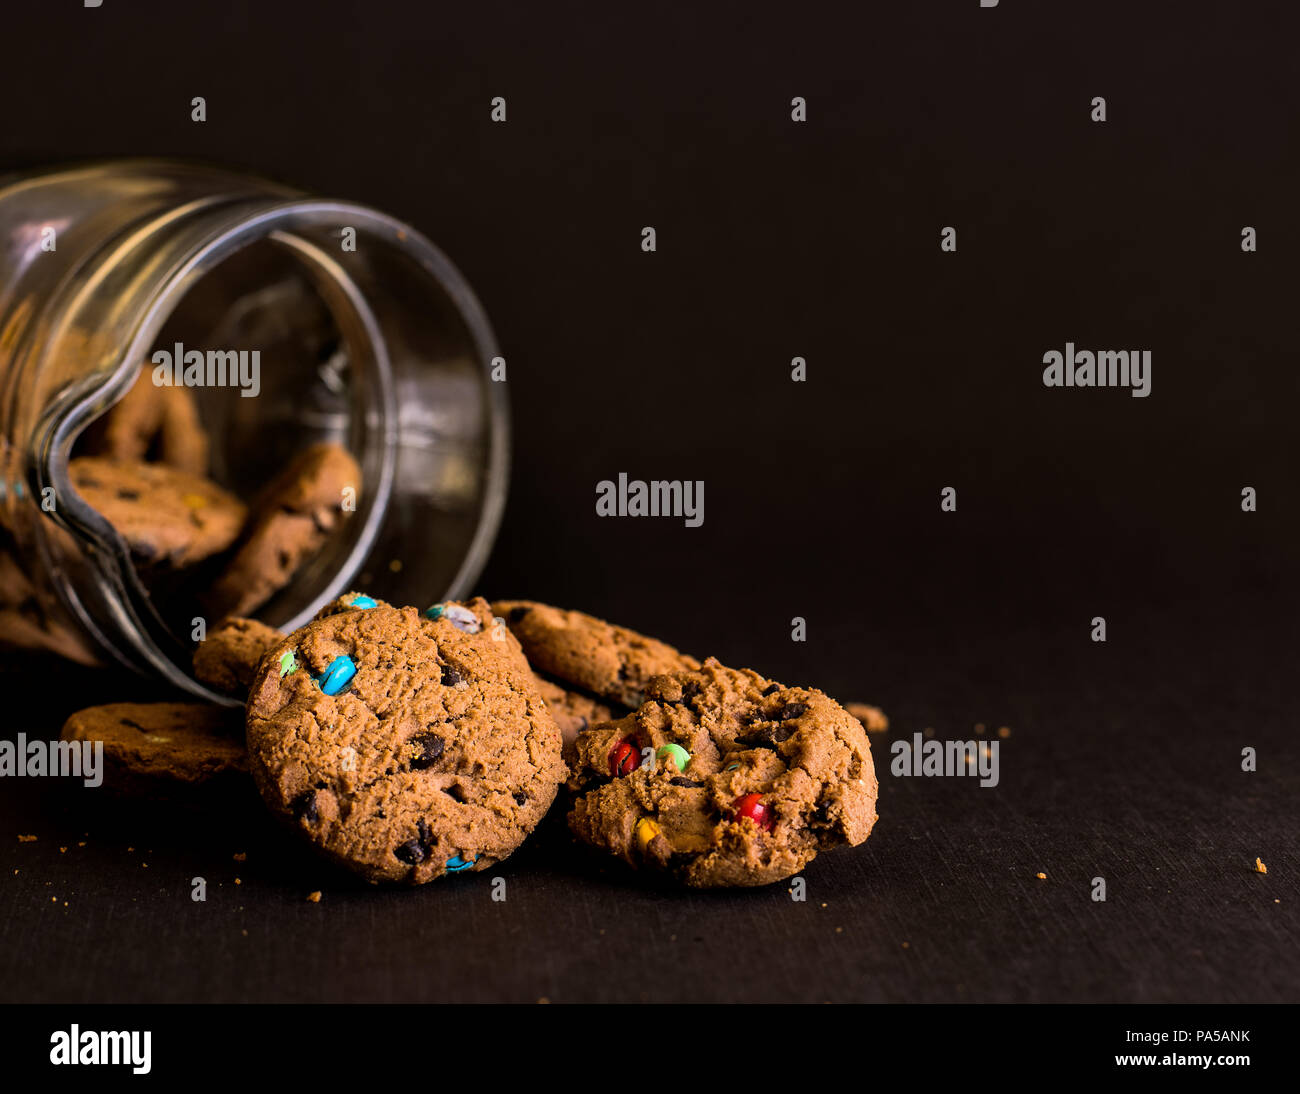 Cookie jar on black background with biscuits spilling out. - Stock Image